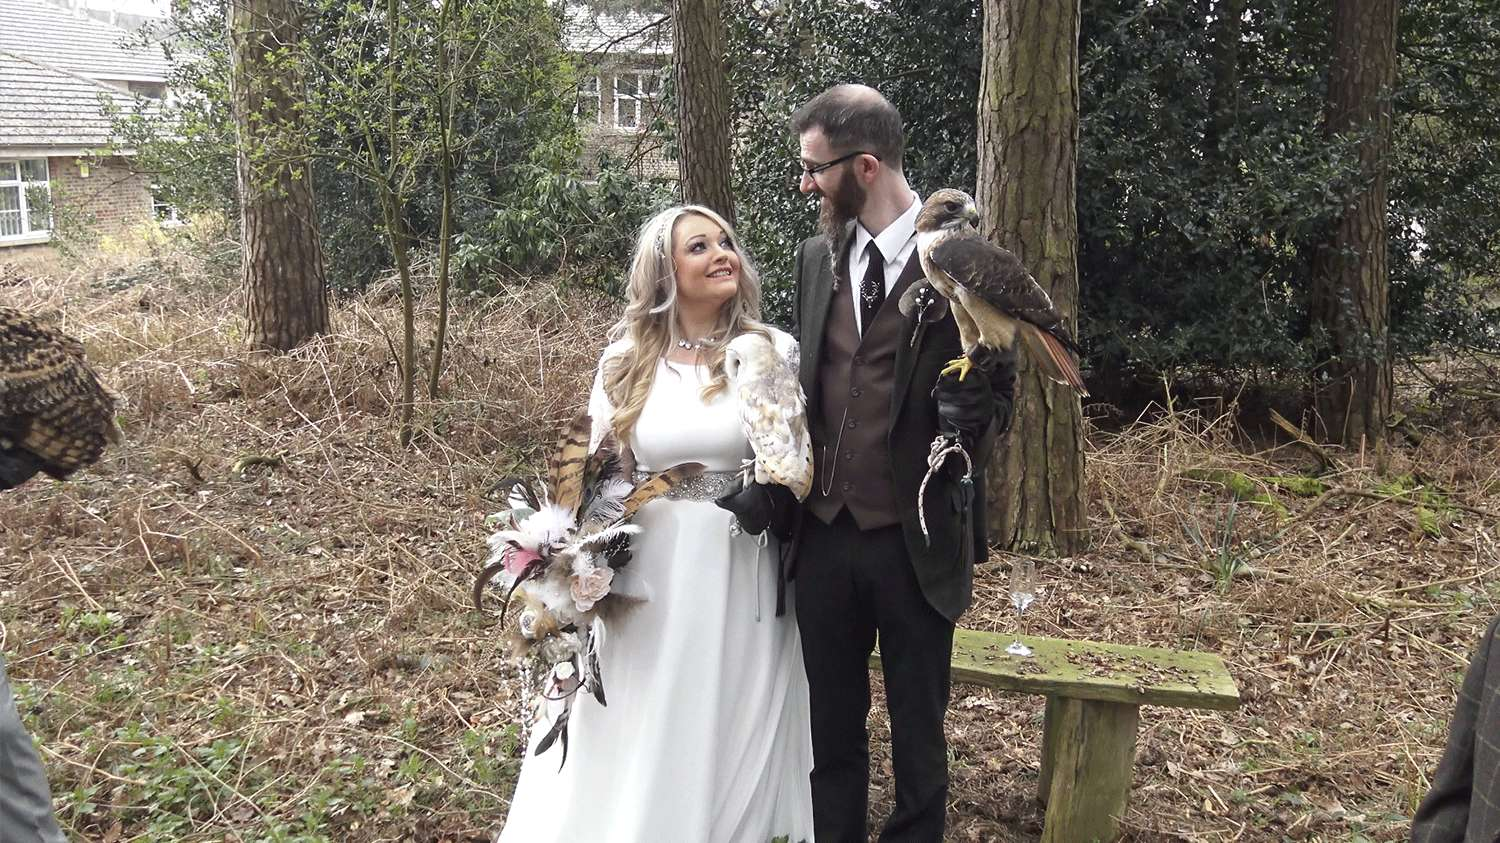 Falconry, forests and feathery friends